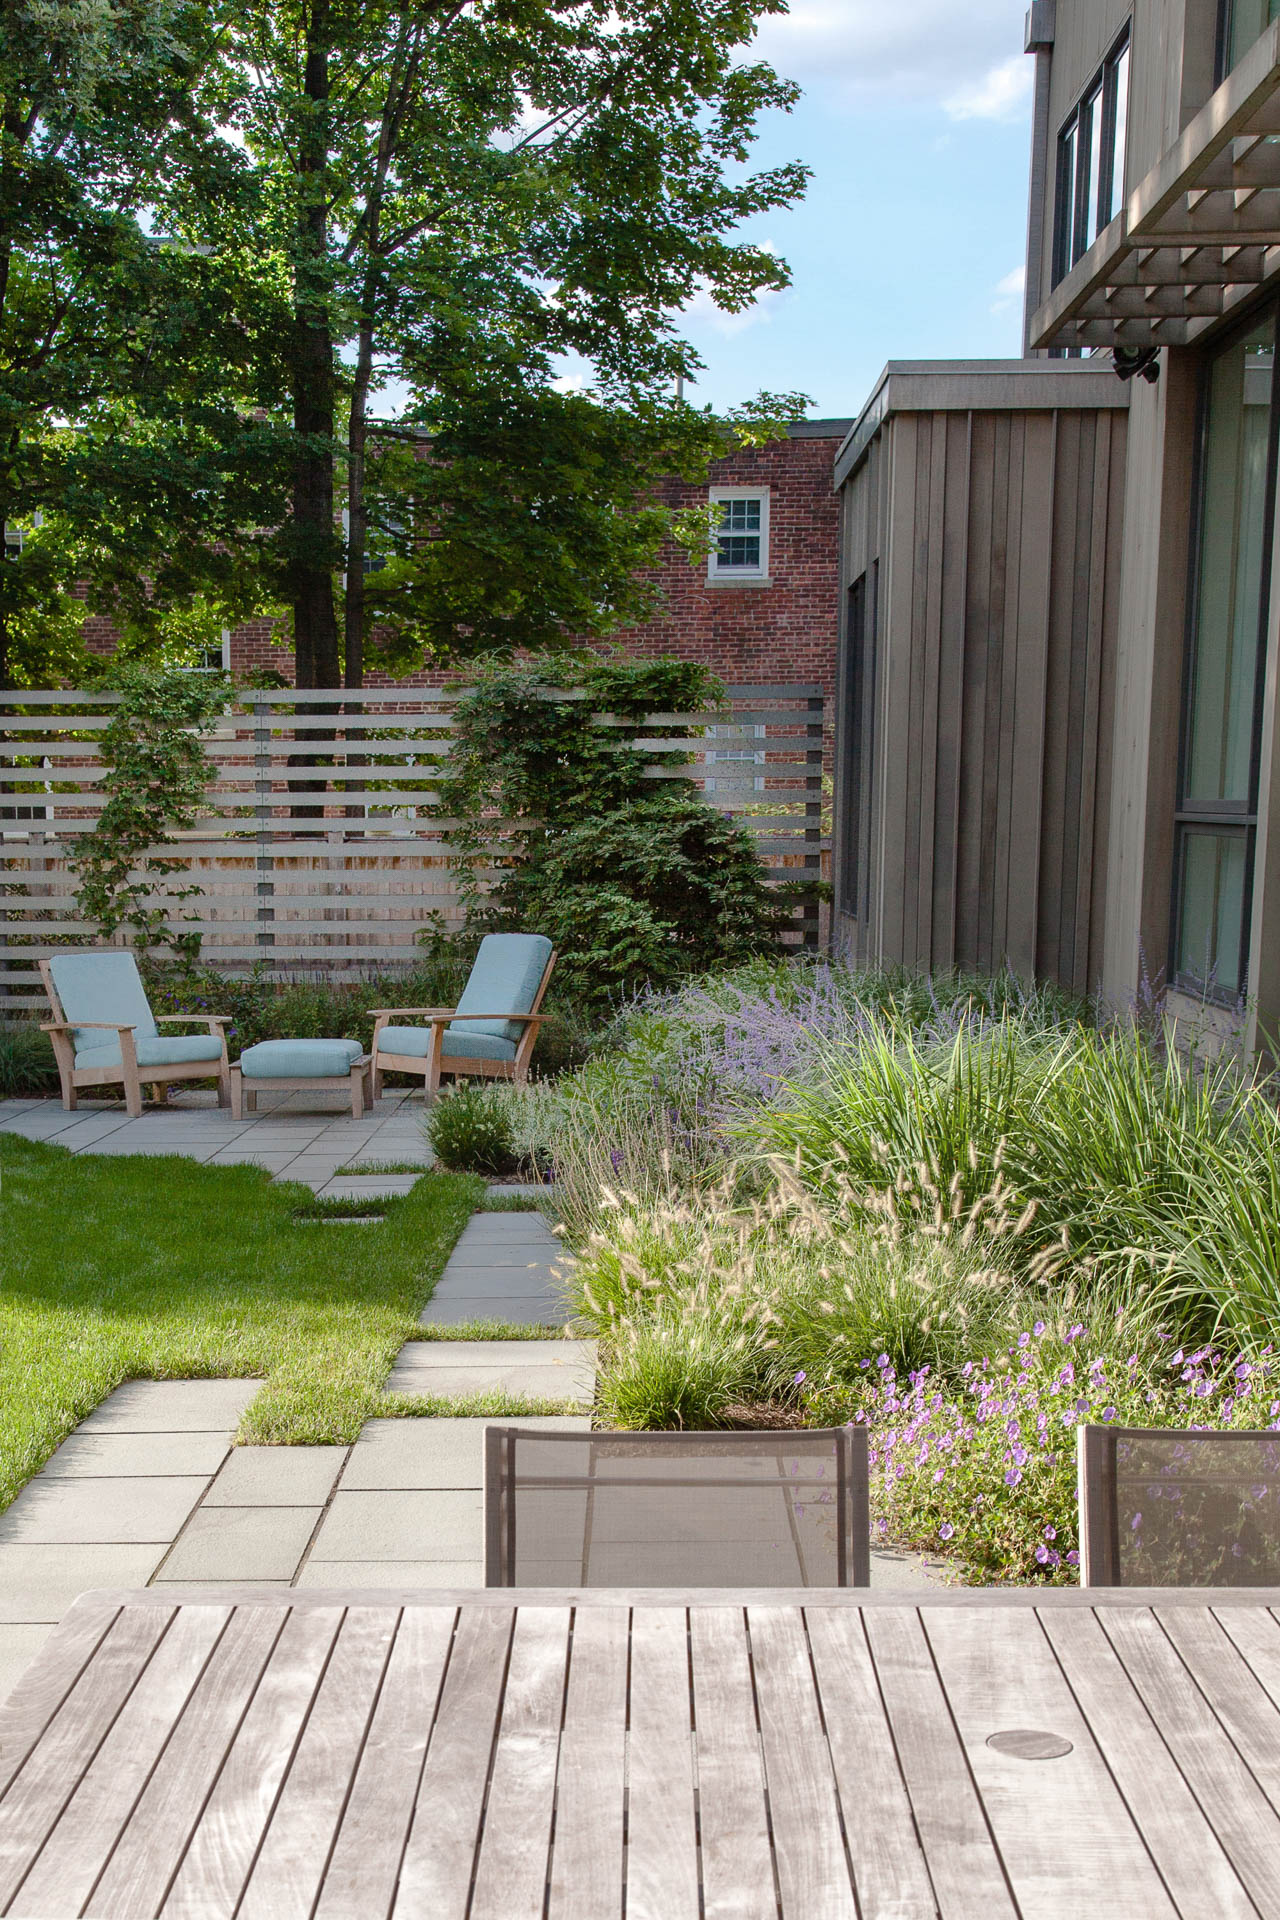 35 Modern Front Yard Landscaping Ideas With Urban Style: Matthew Cunningham Landscape Design LLC